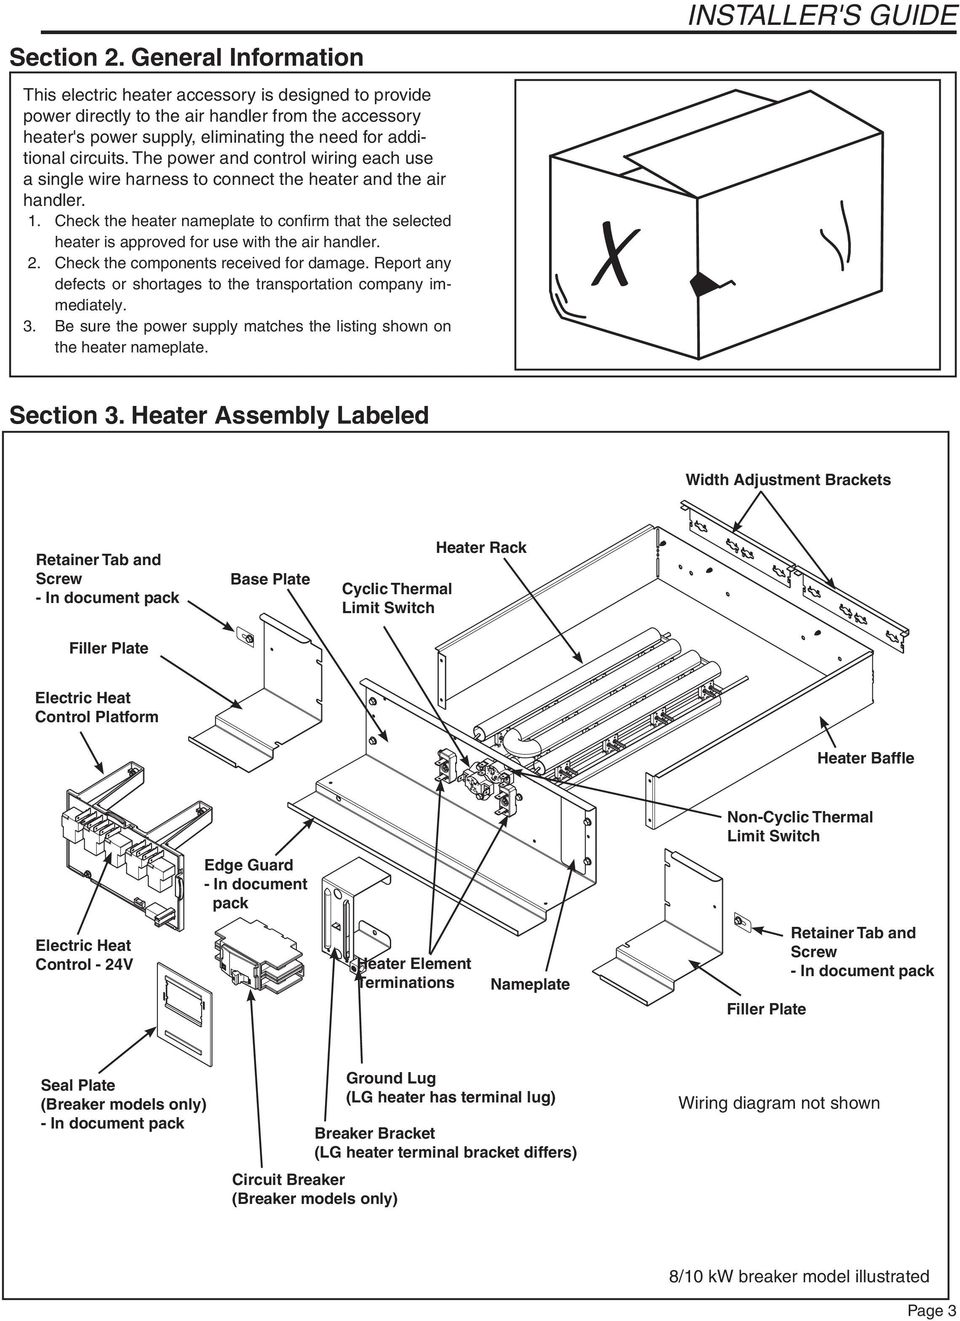 Installers Guide Supplementary Electric Heaters 18 Gj08d1 1 Table Truck Heater Wiring Diagram Besides Garage Door Opener The Power And Control Each Use A Single Wire Harness To Connect